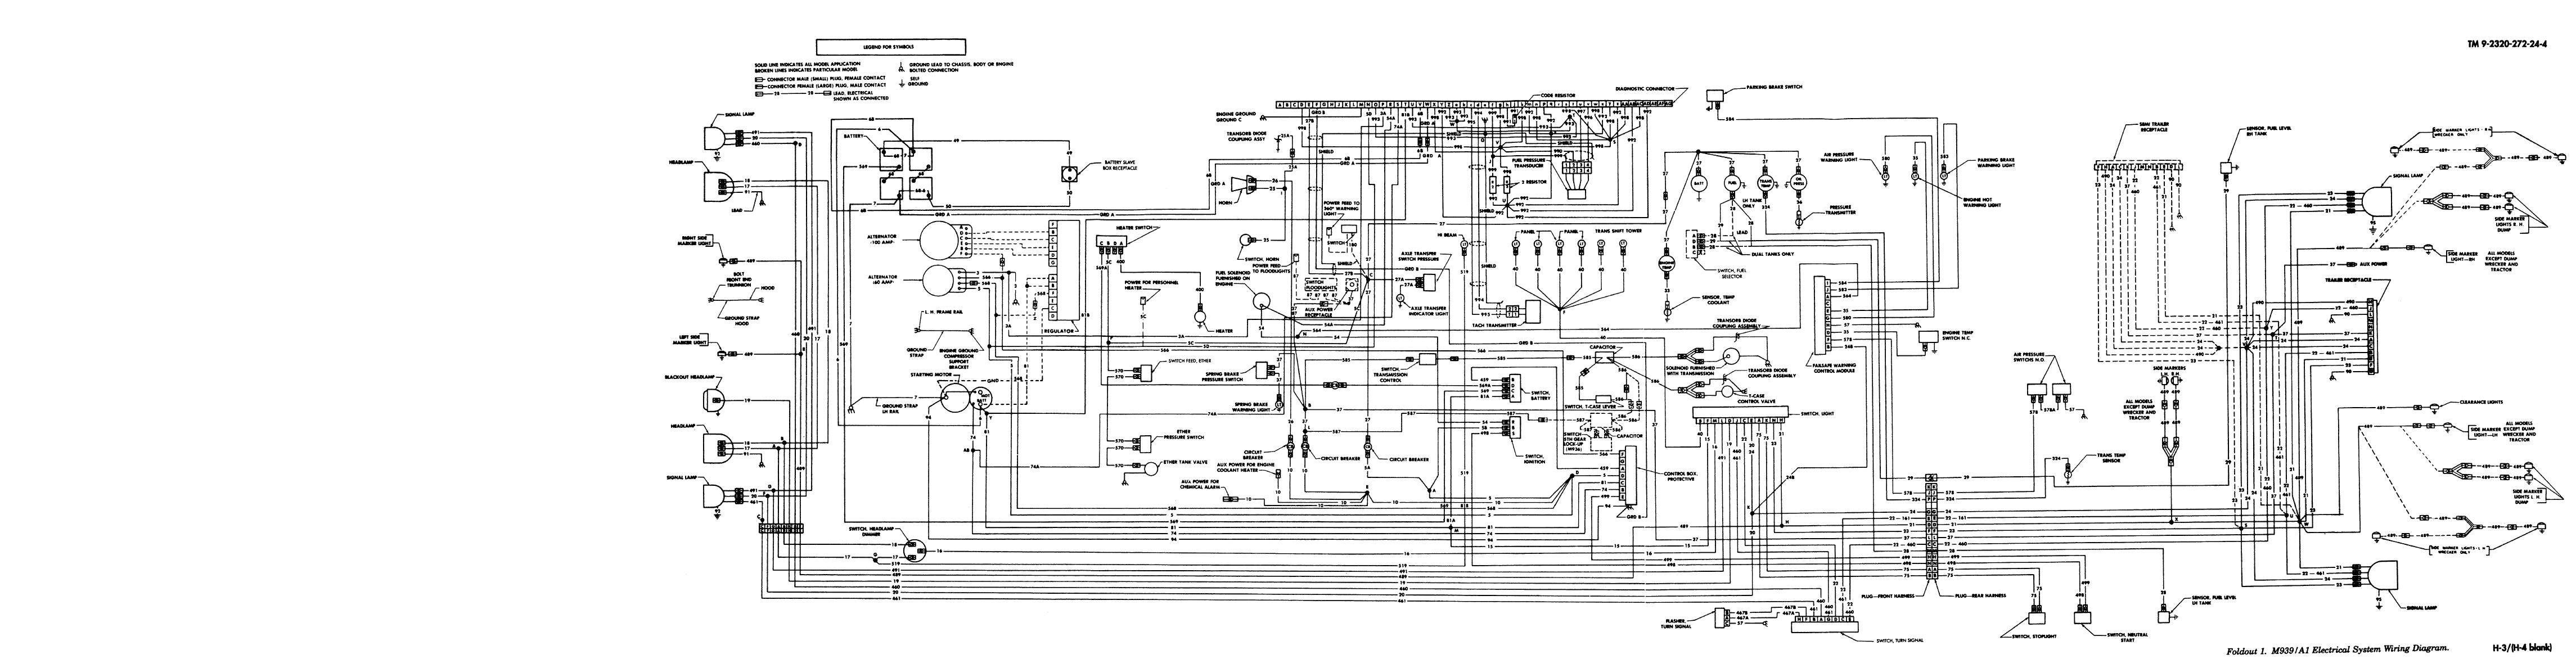 M939 Wiring Diagram Auto Electrical Switch